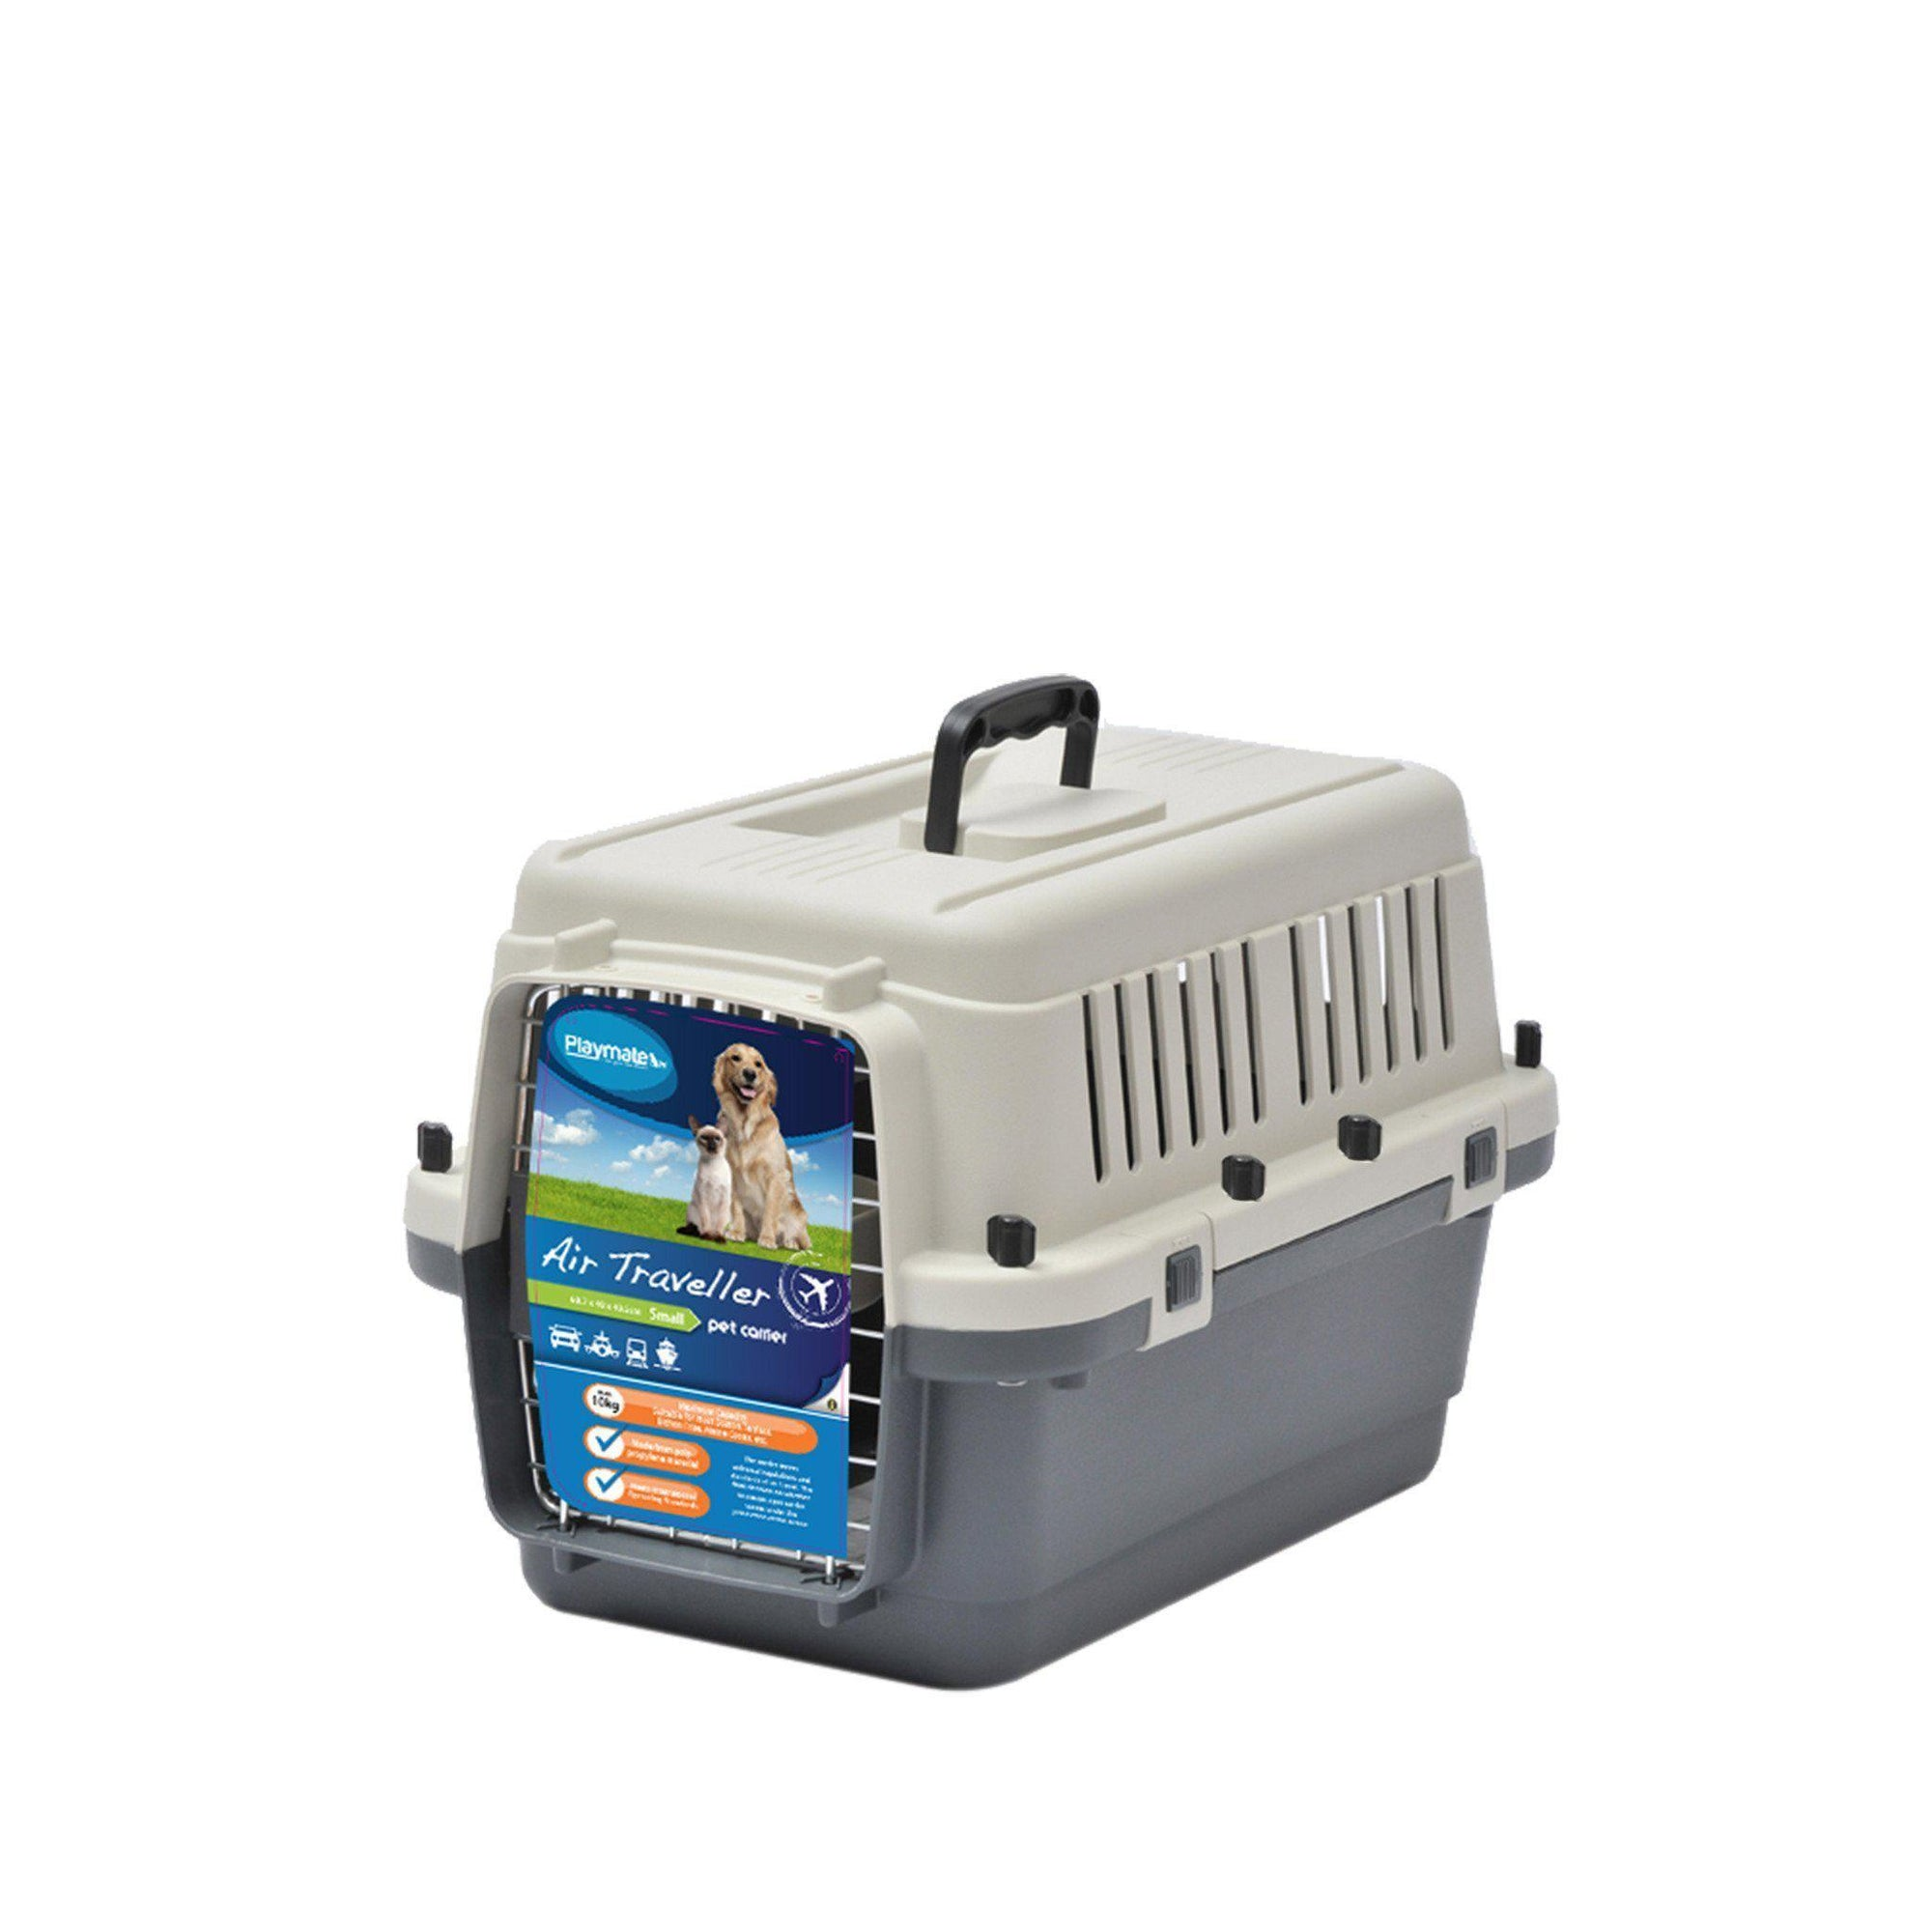 Air Traveller Pet Carrier (Small) - ComfyPet Products